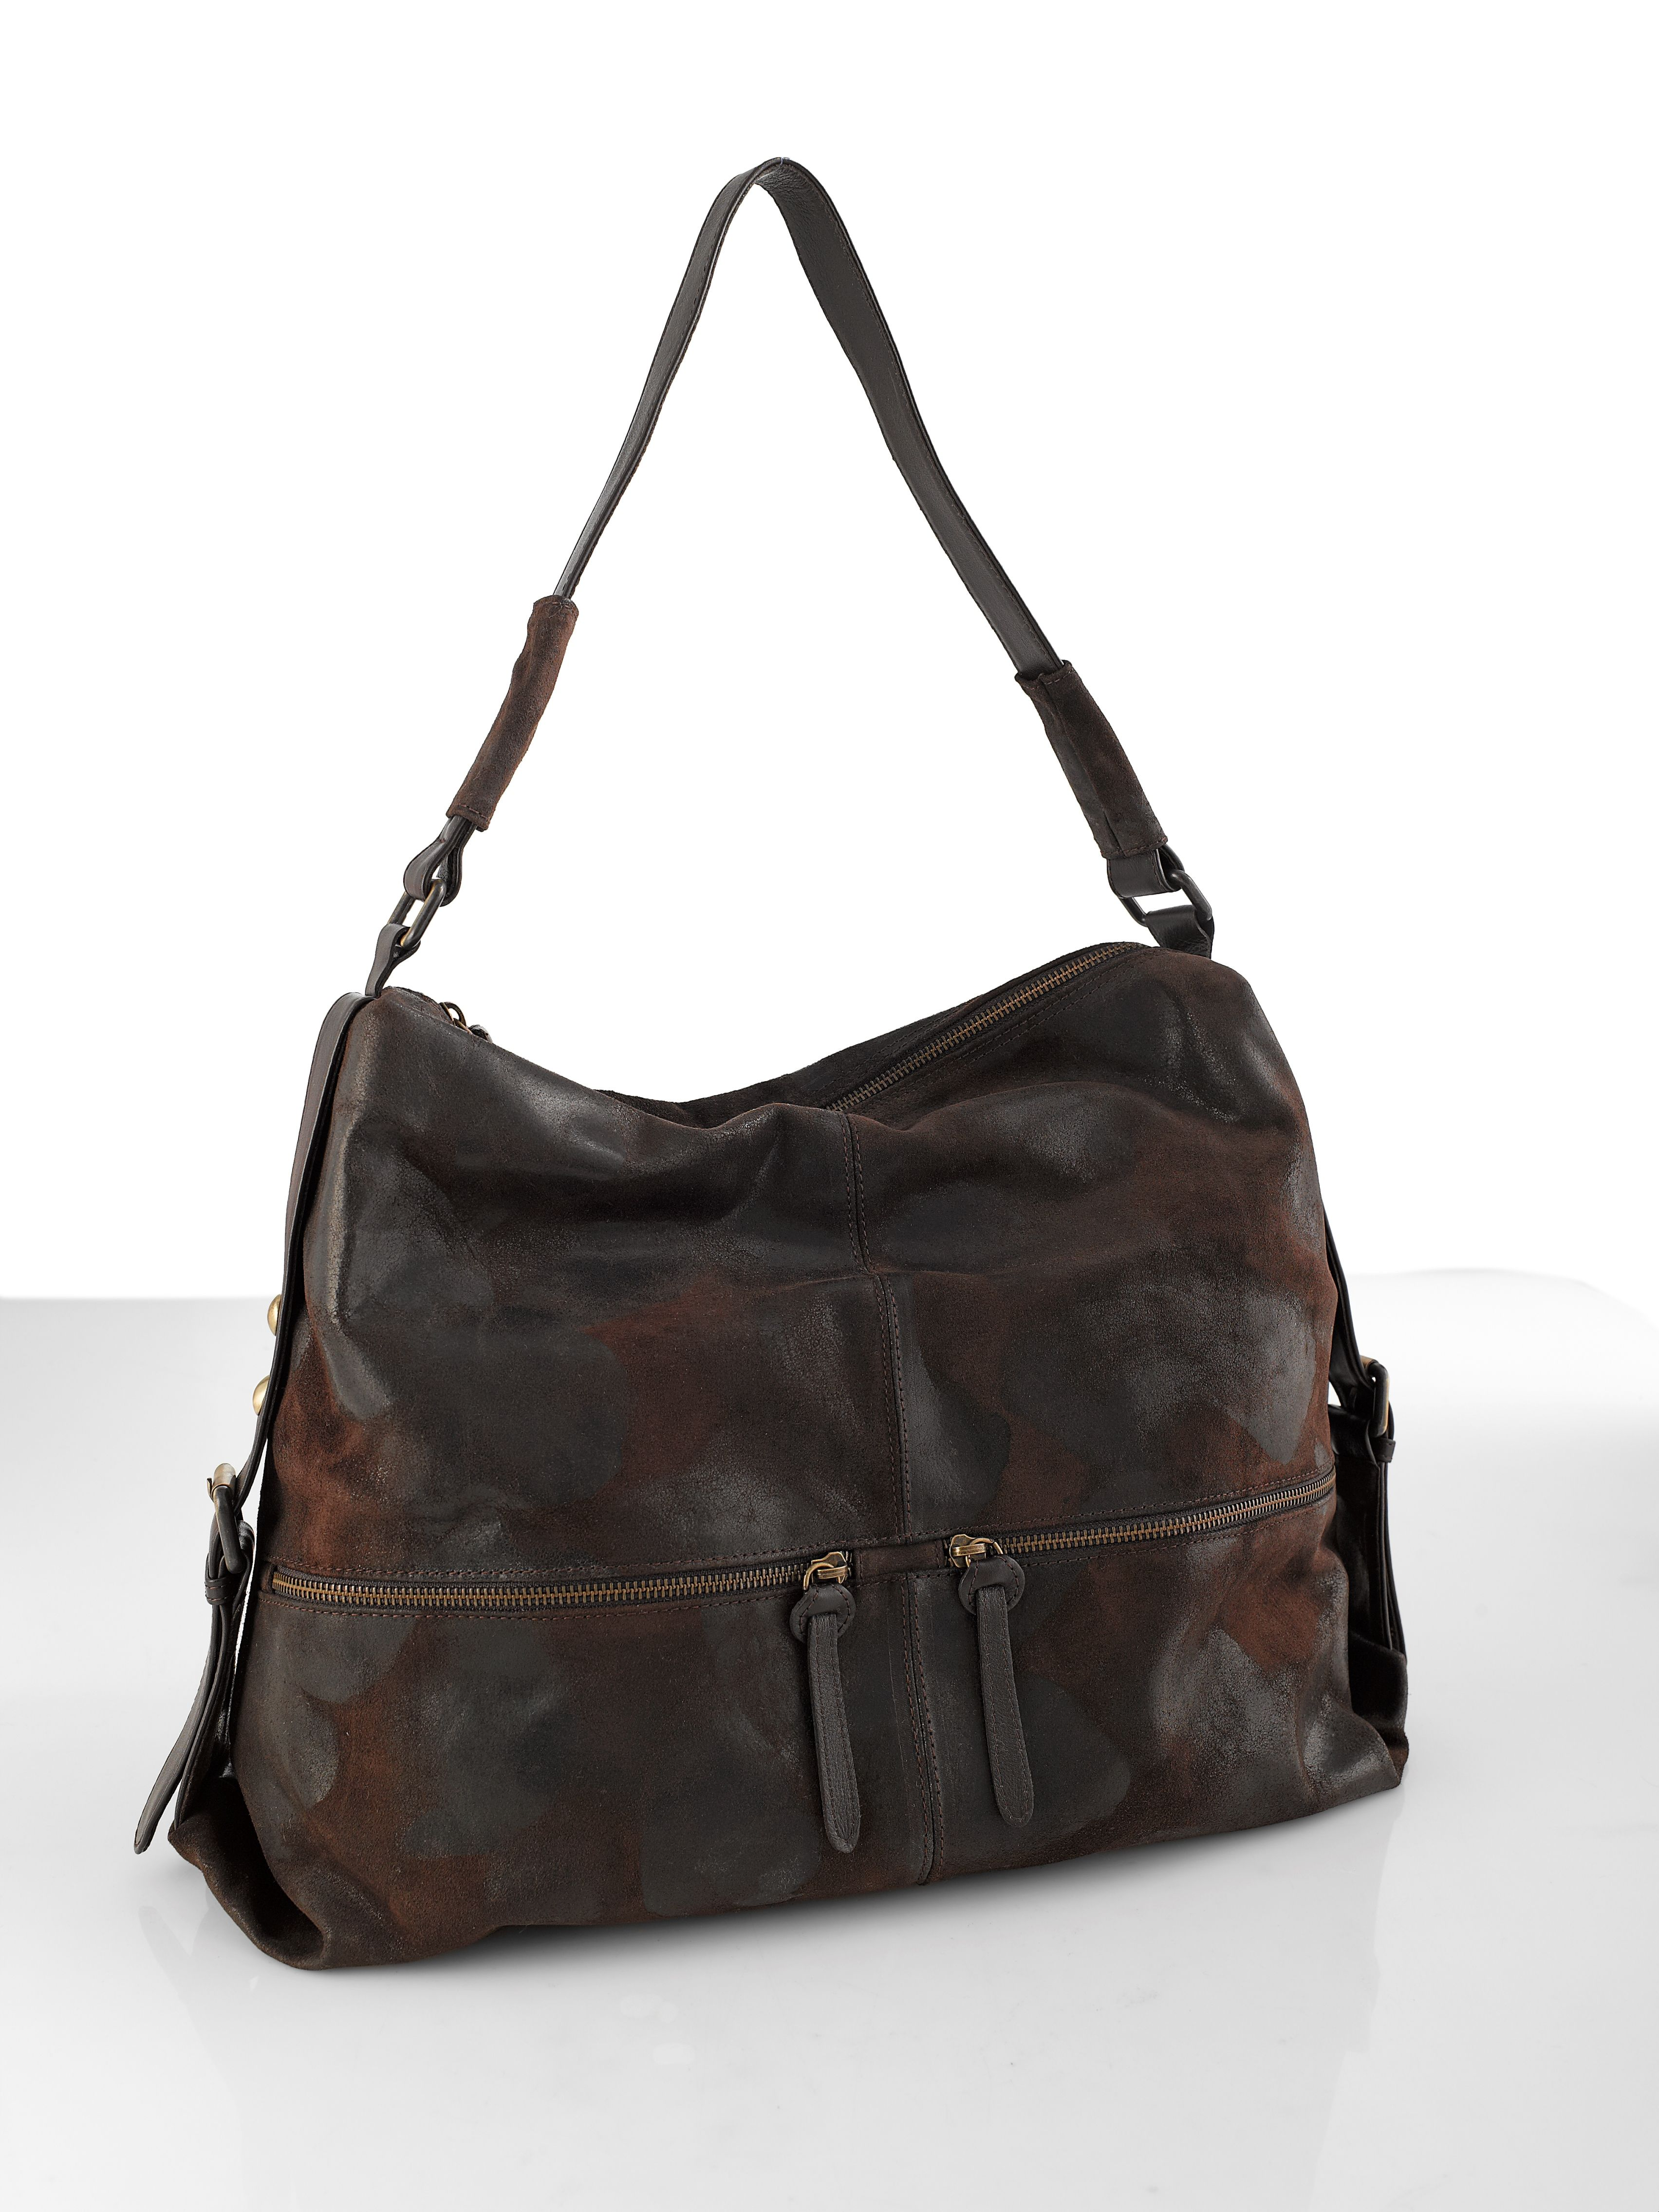 """""""I'm pinning this to participate in Dillard's Pliner Pin It to Win It Sweepstakes. I could possibly win a Donald Pliner handbag valued at $325!"""""""